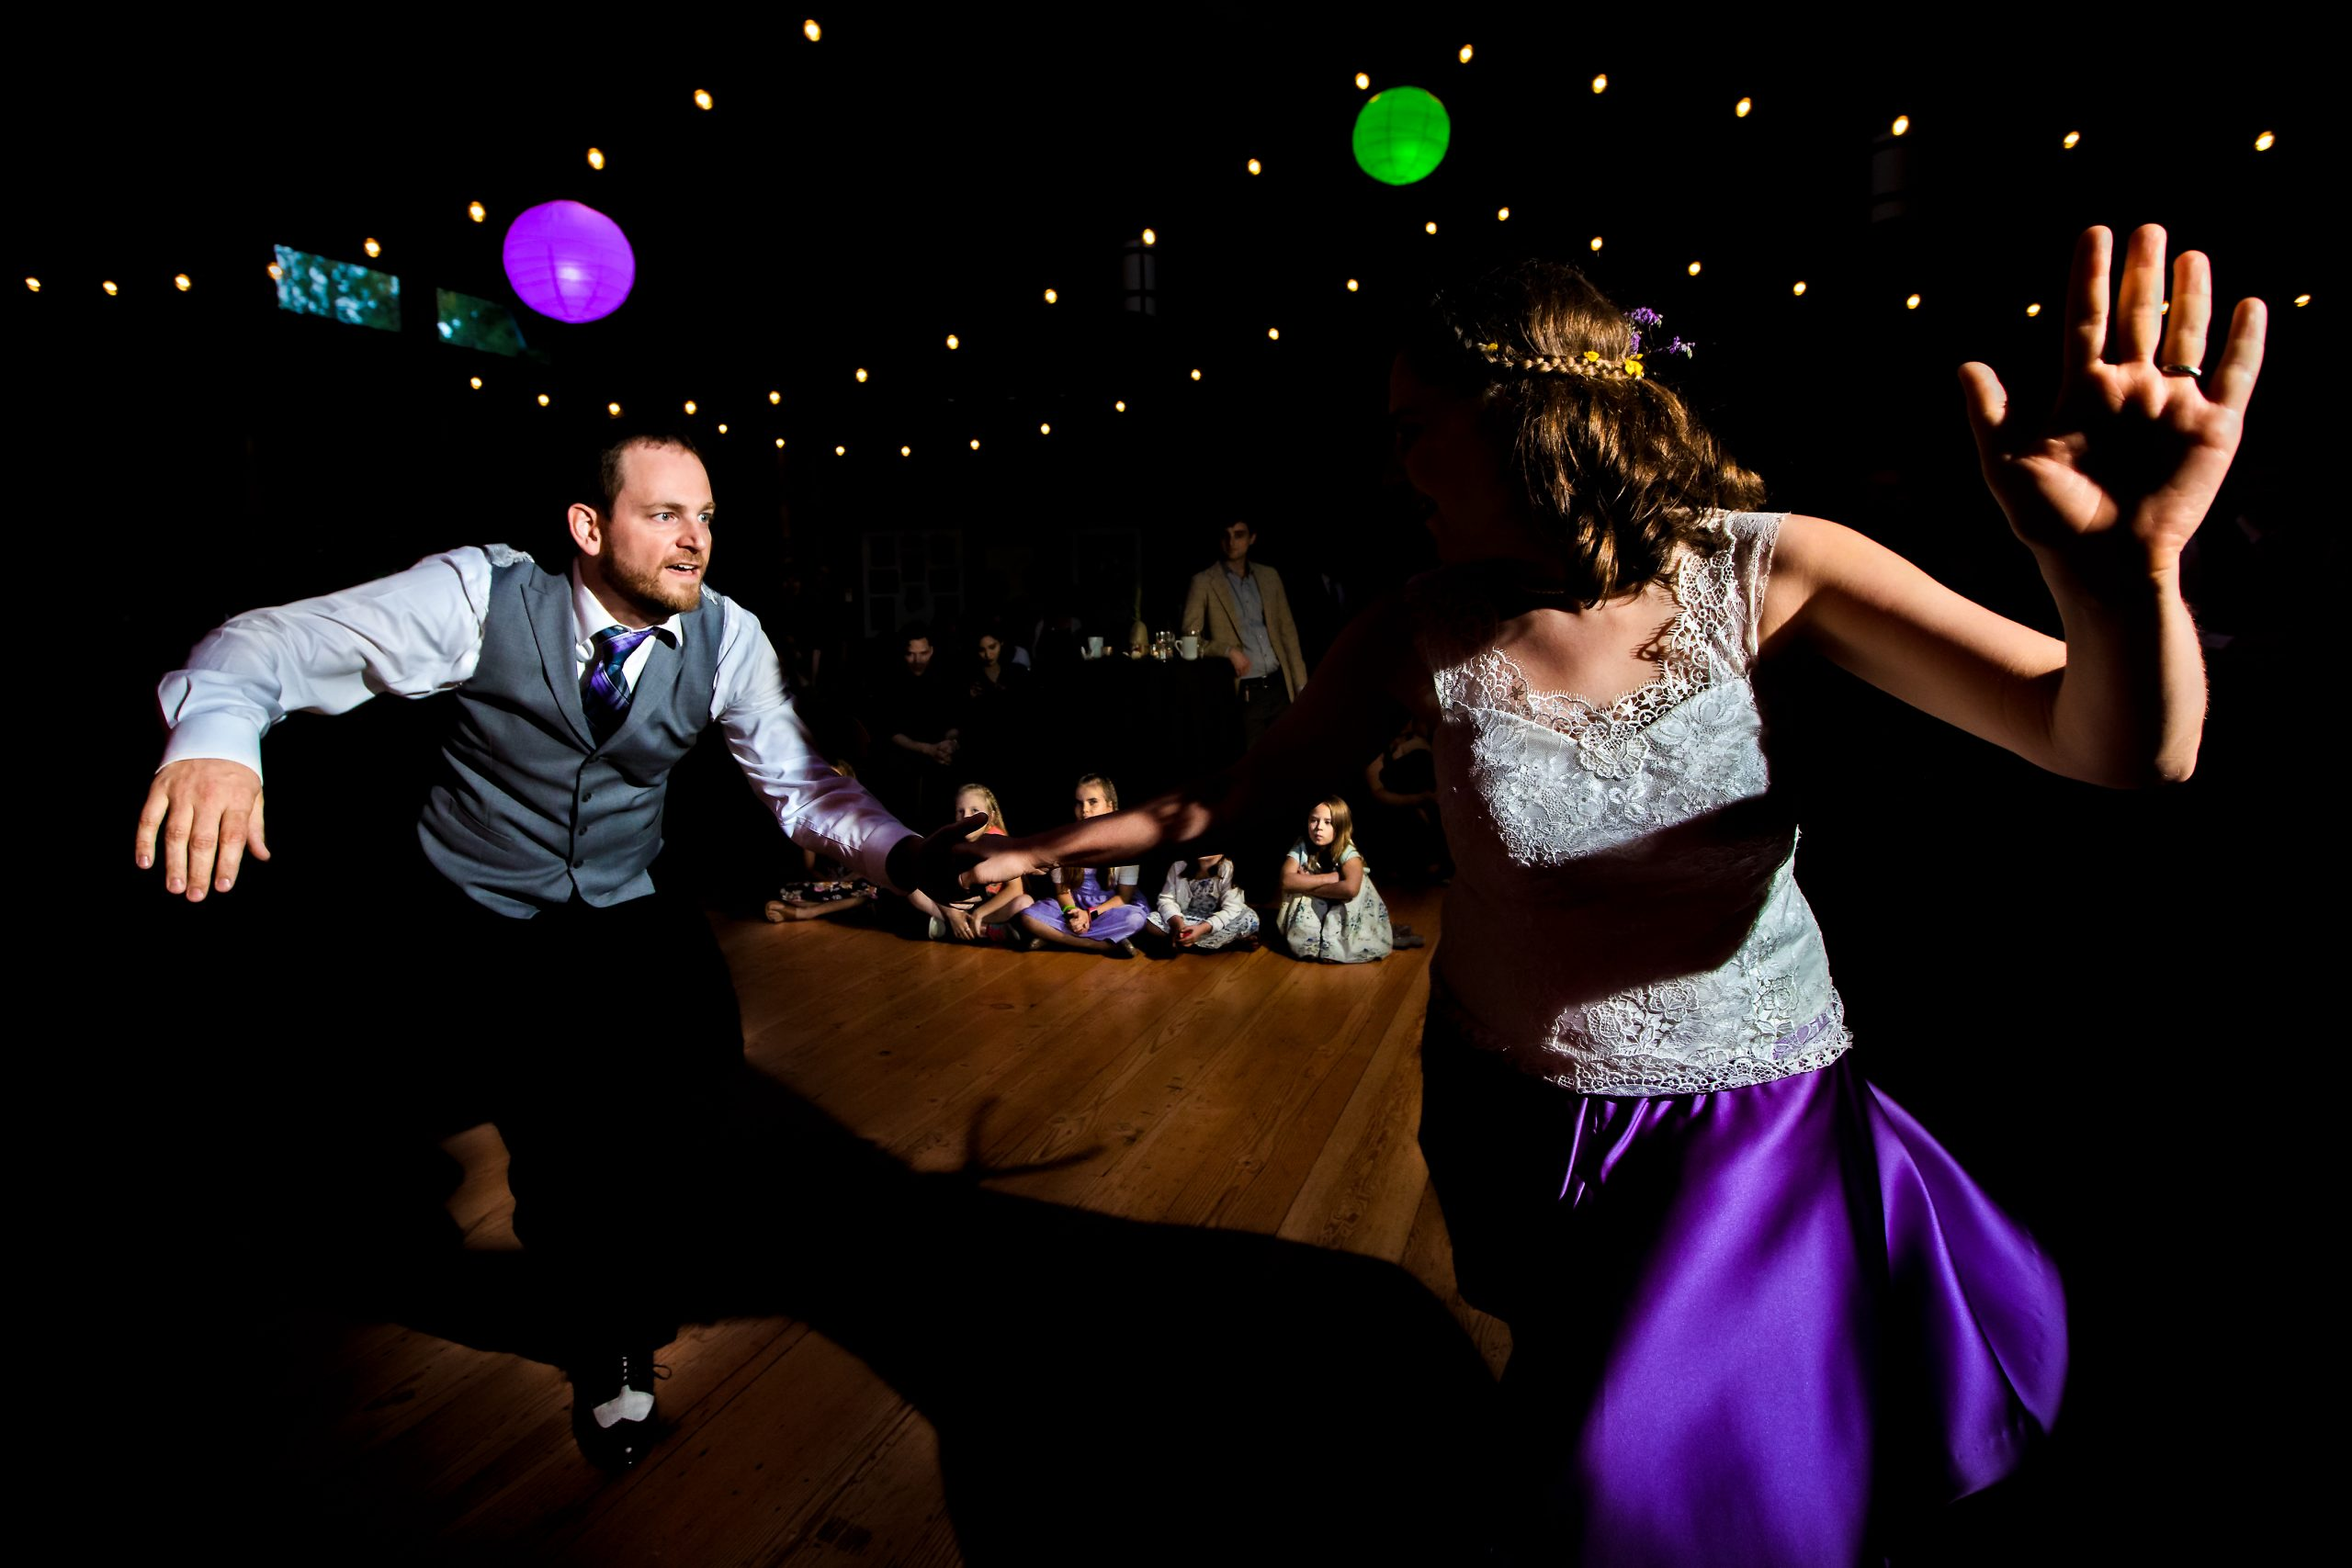 A newly wed couple dance together as people watch